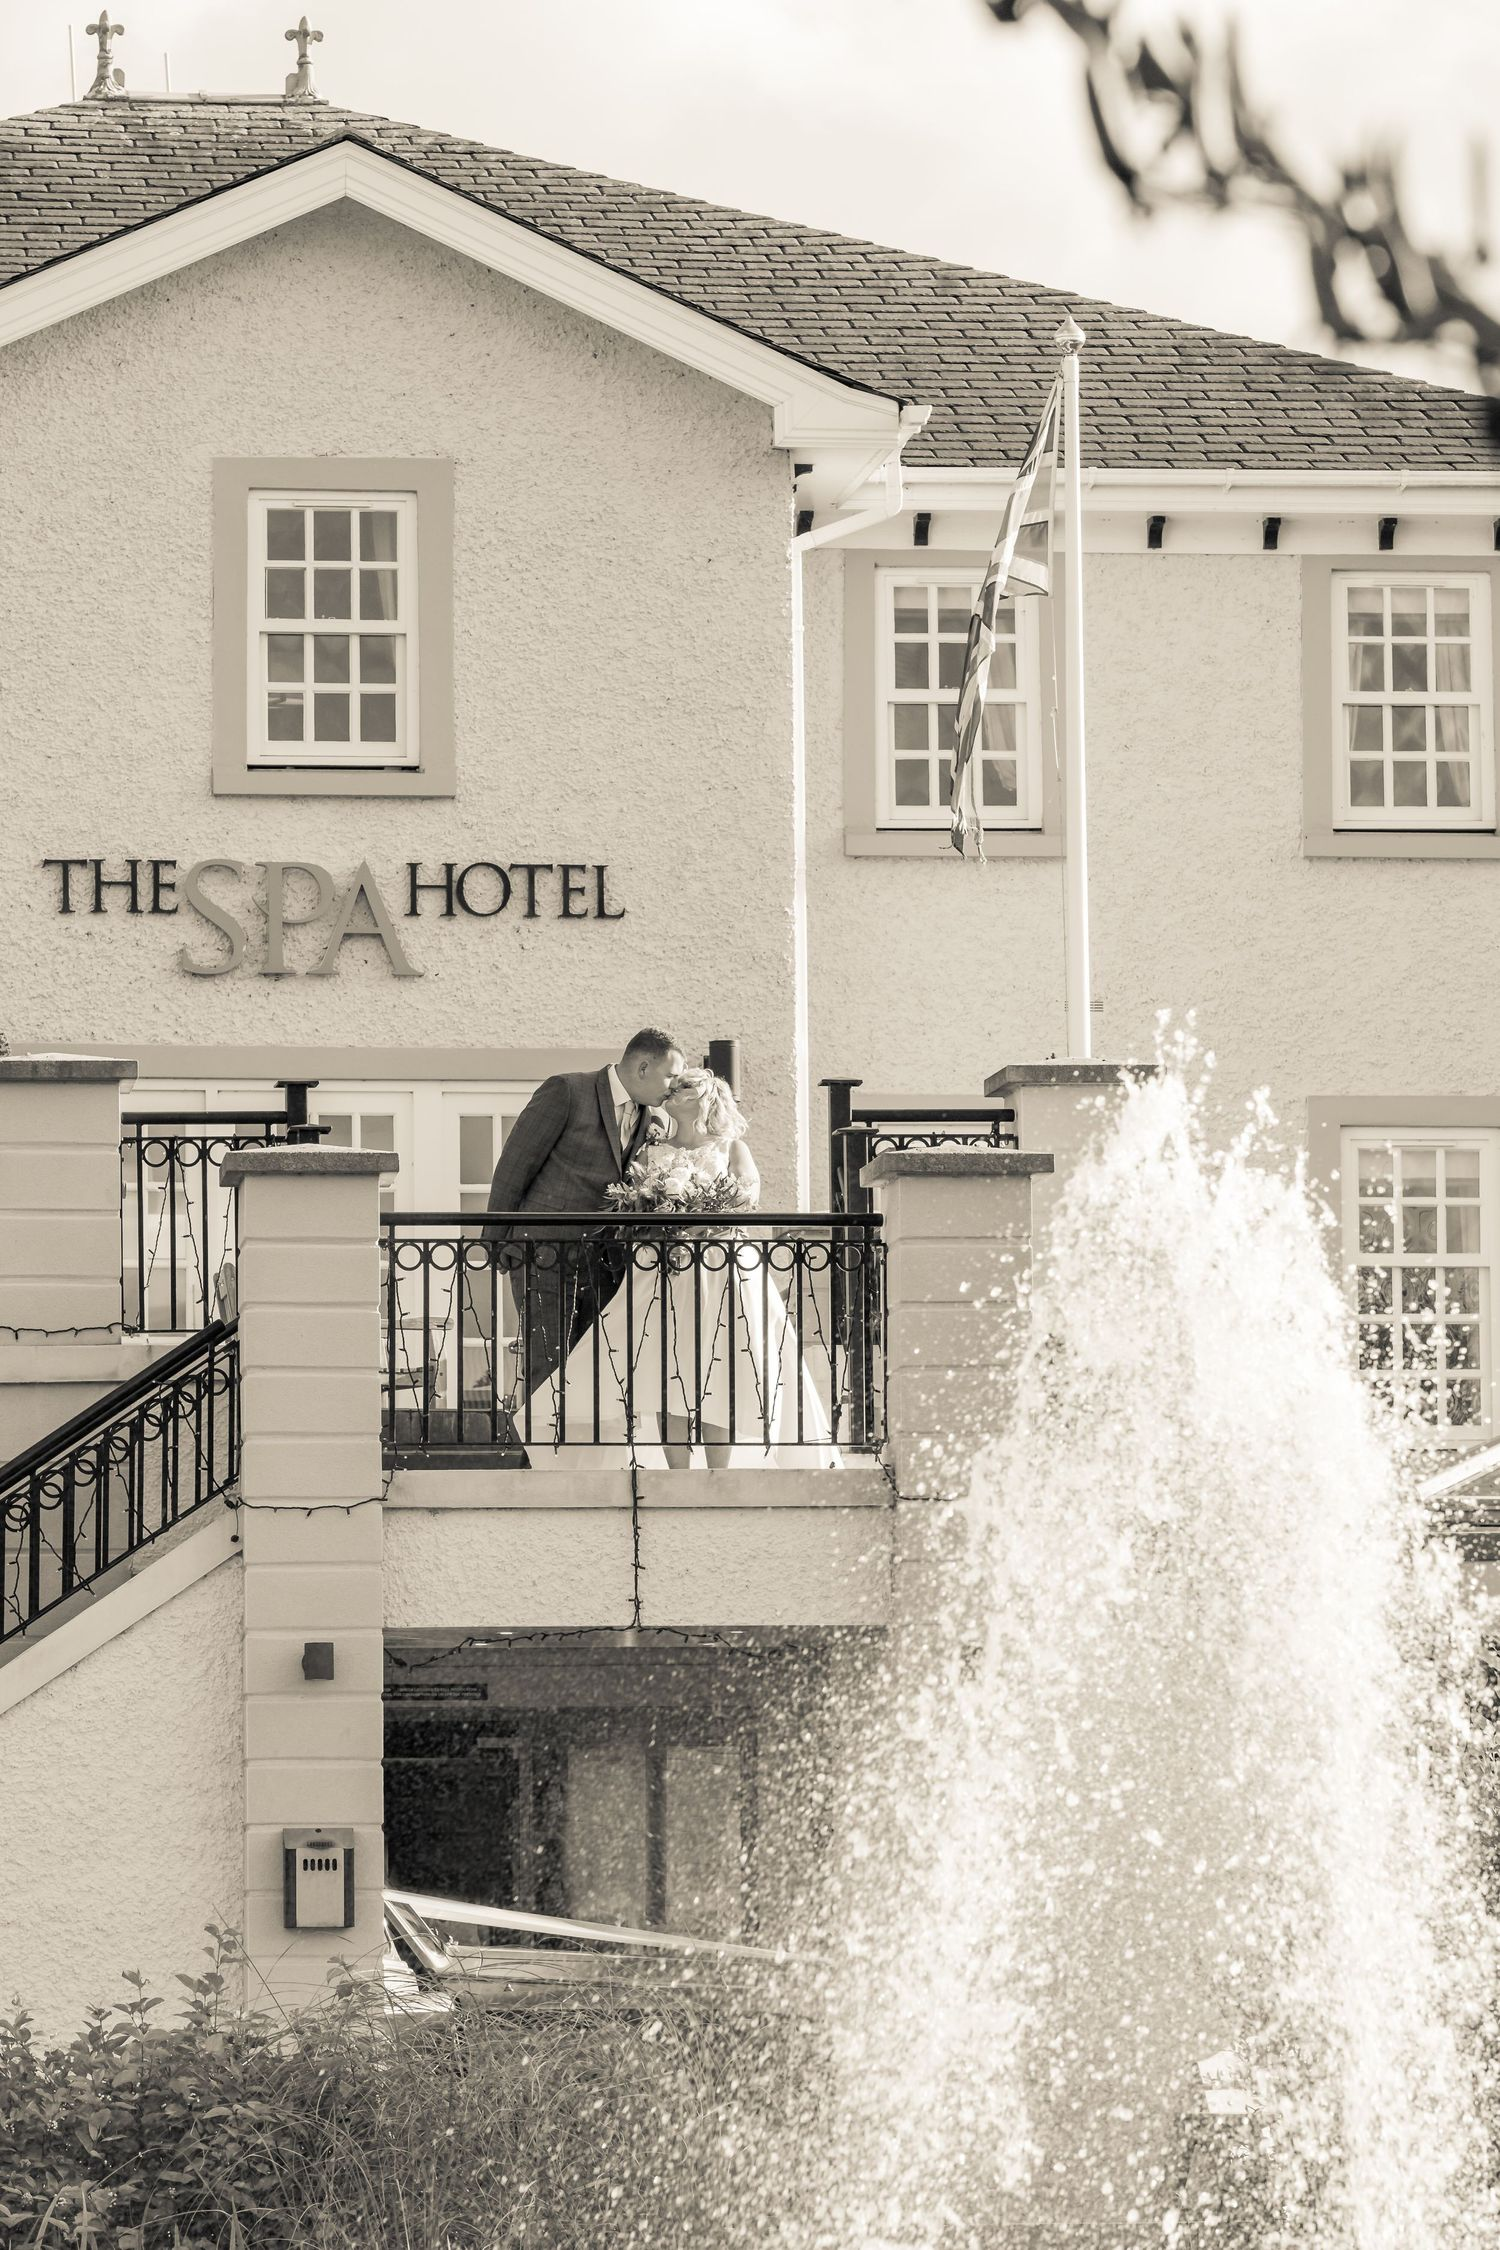 bride and groom pose for a photograph on the stairs outside ribby hall spa hotel water fountain in the foreground